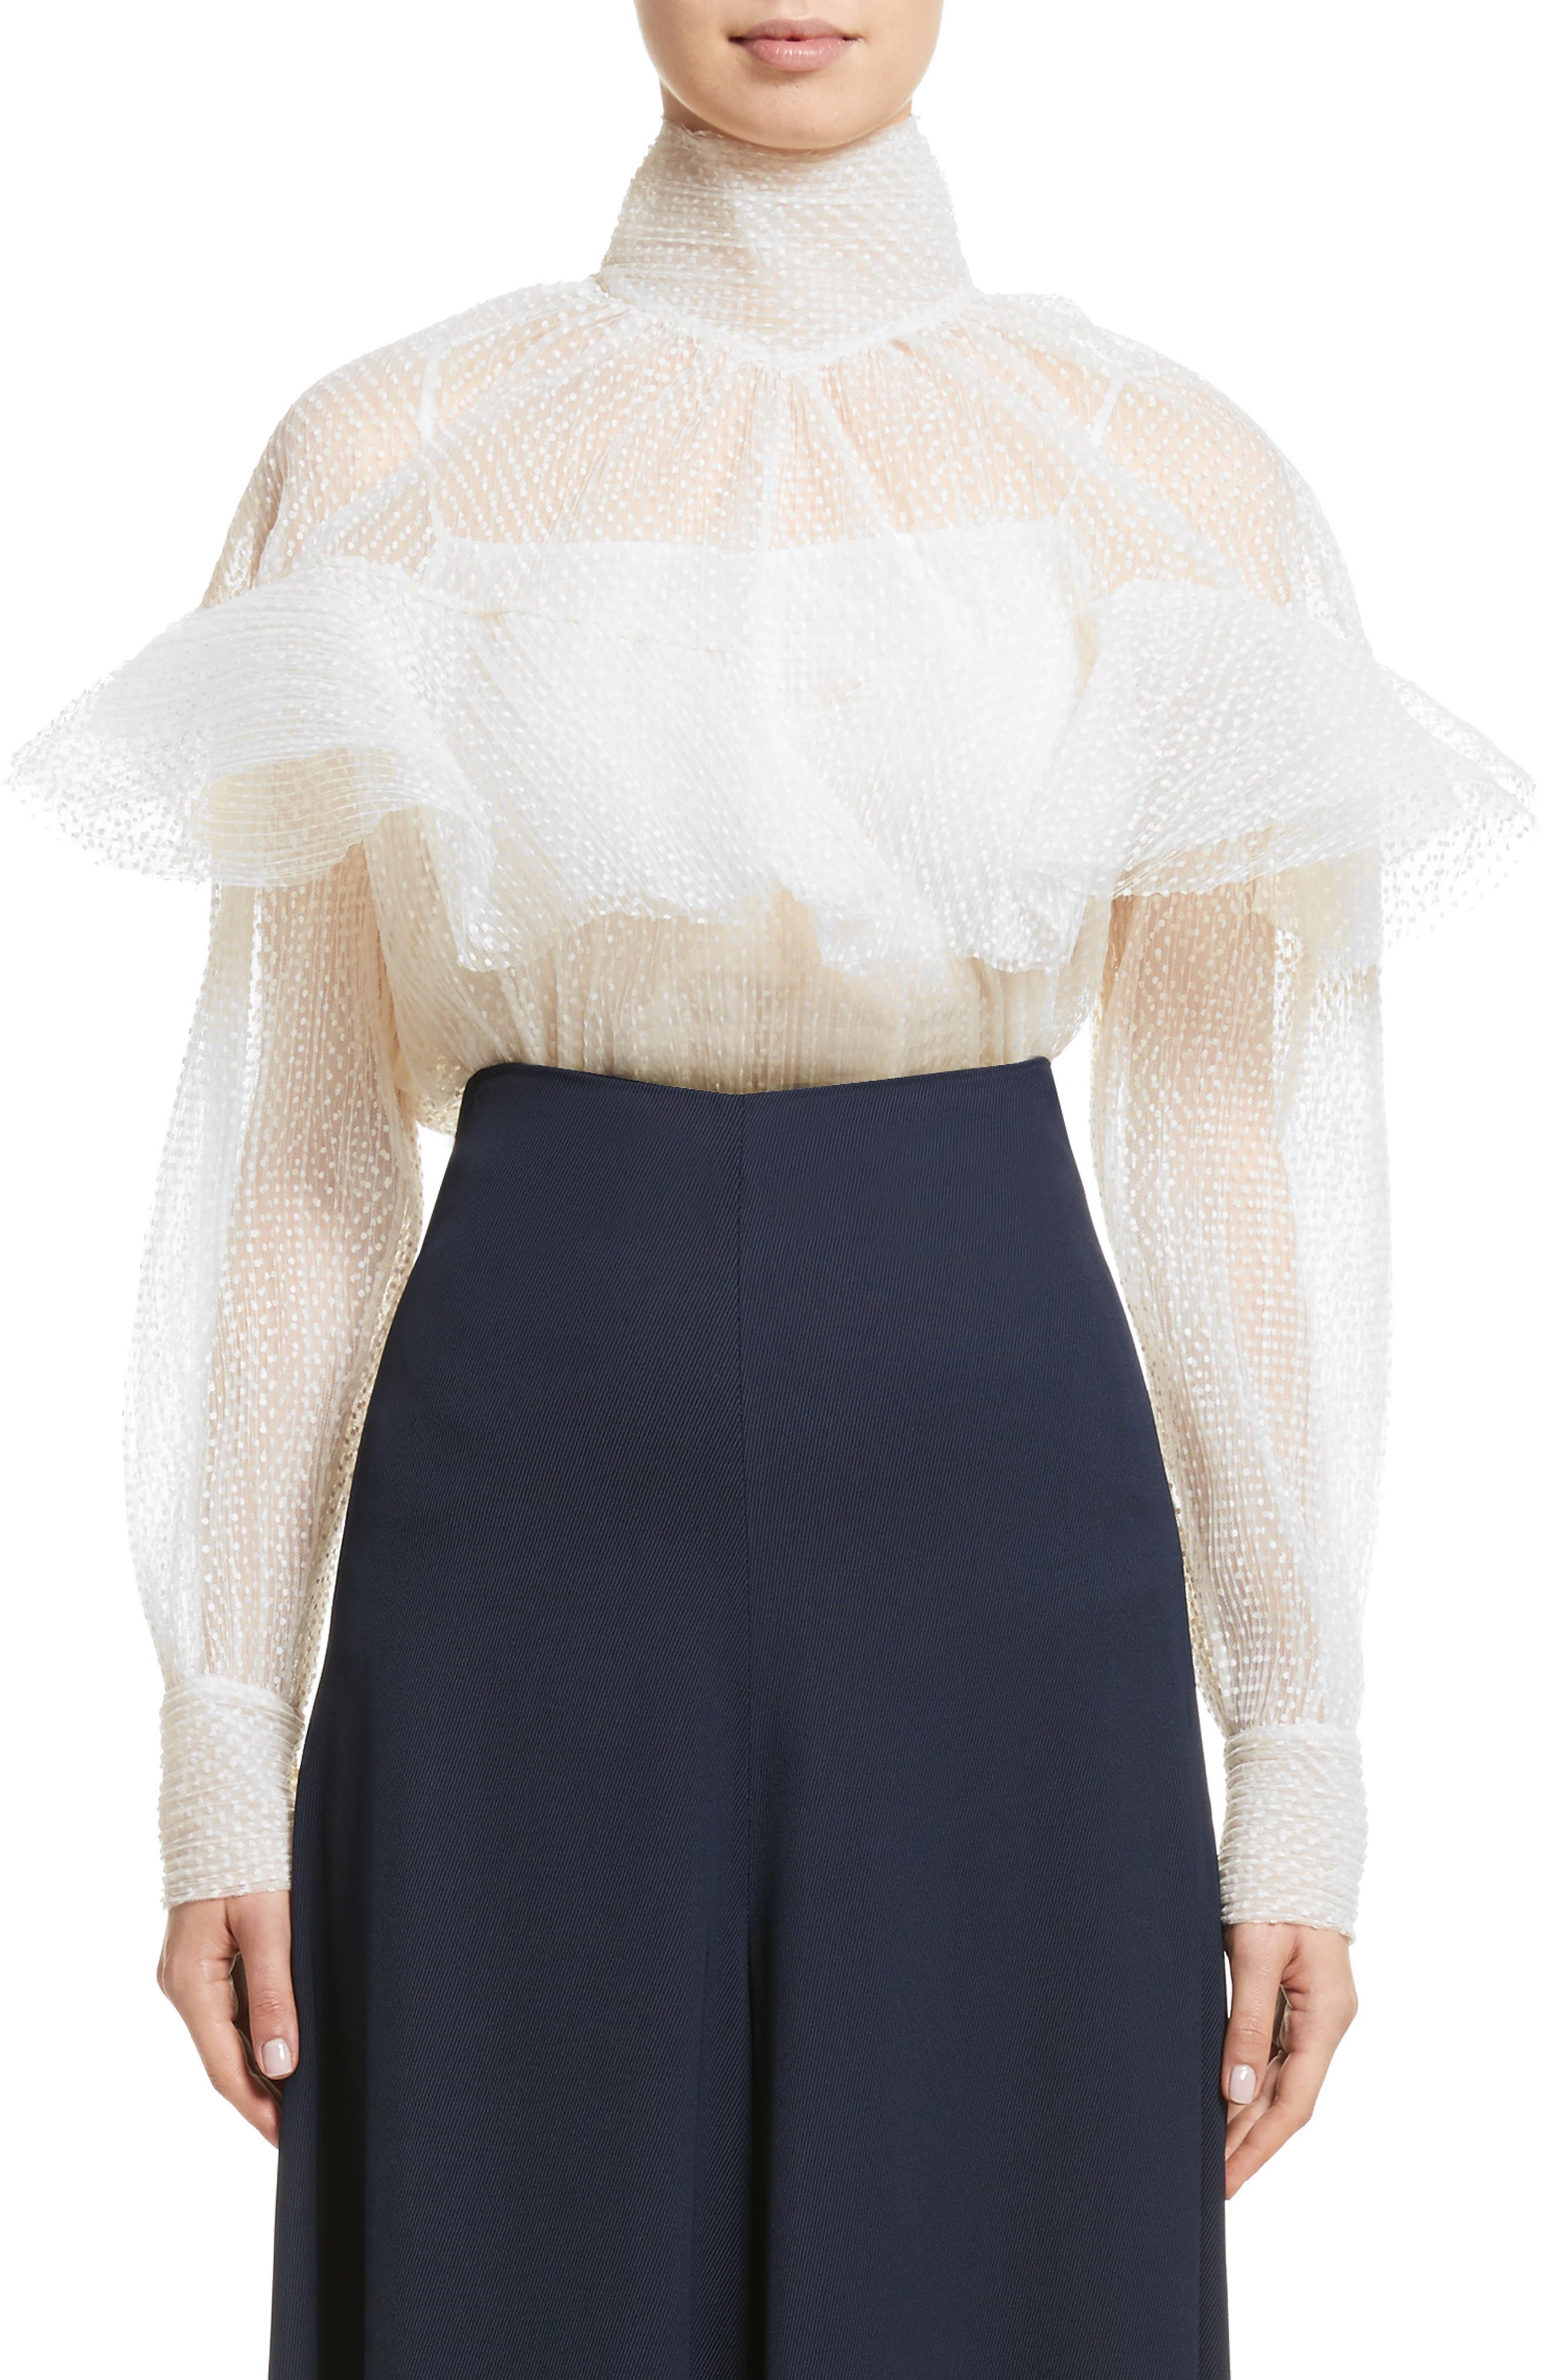 A.W.A.K.E Frill Double Layered Tulle Top,                         Main,                         color,